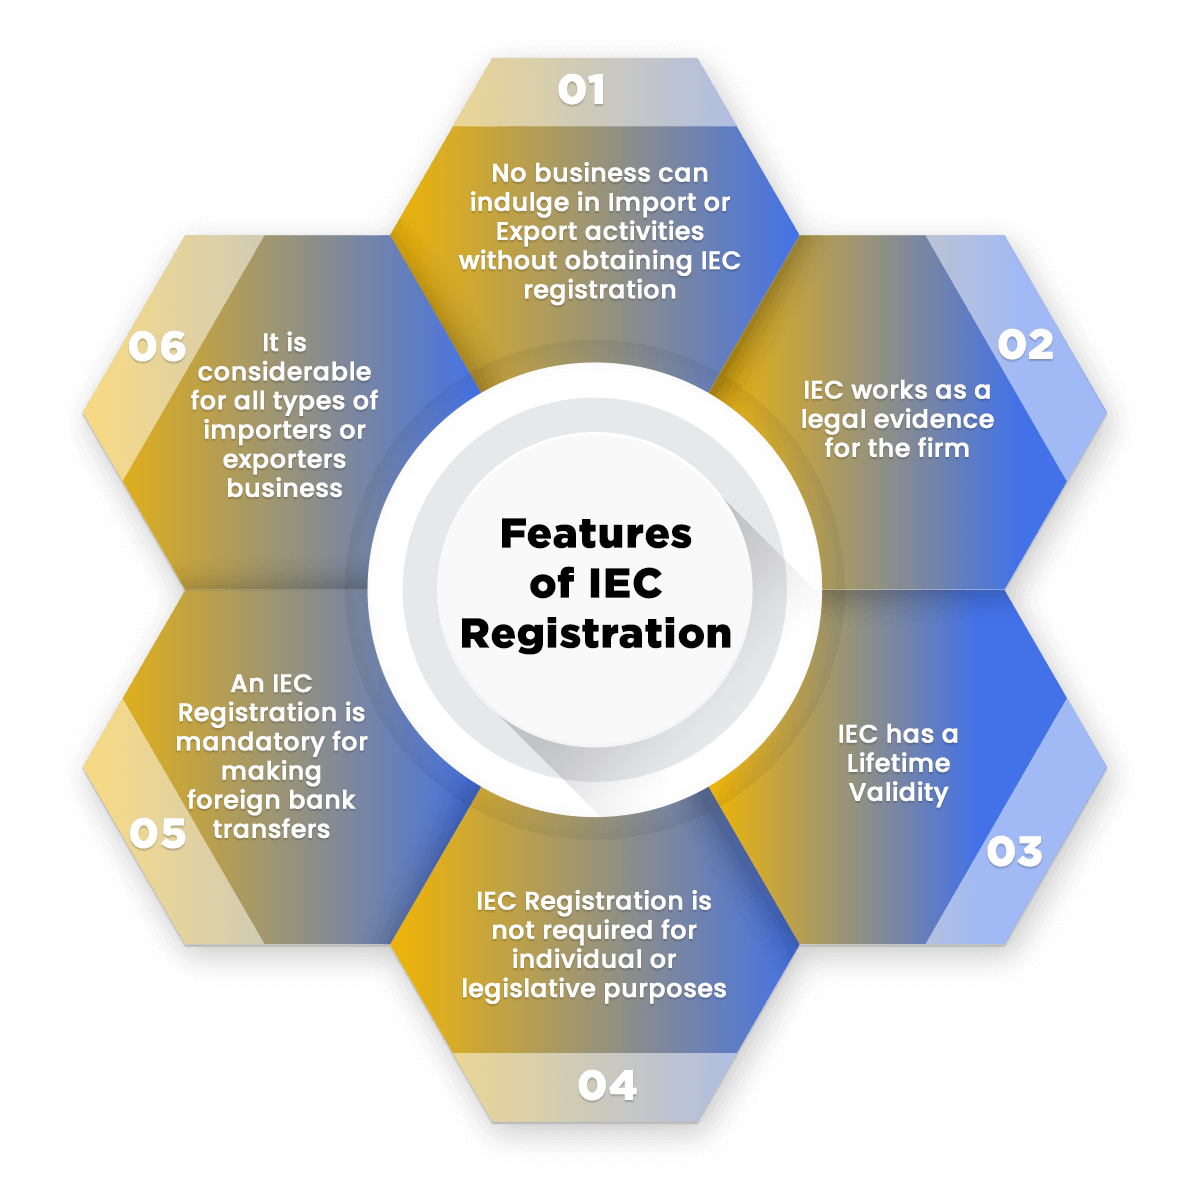 Features of IEC